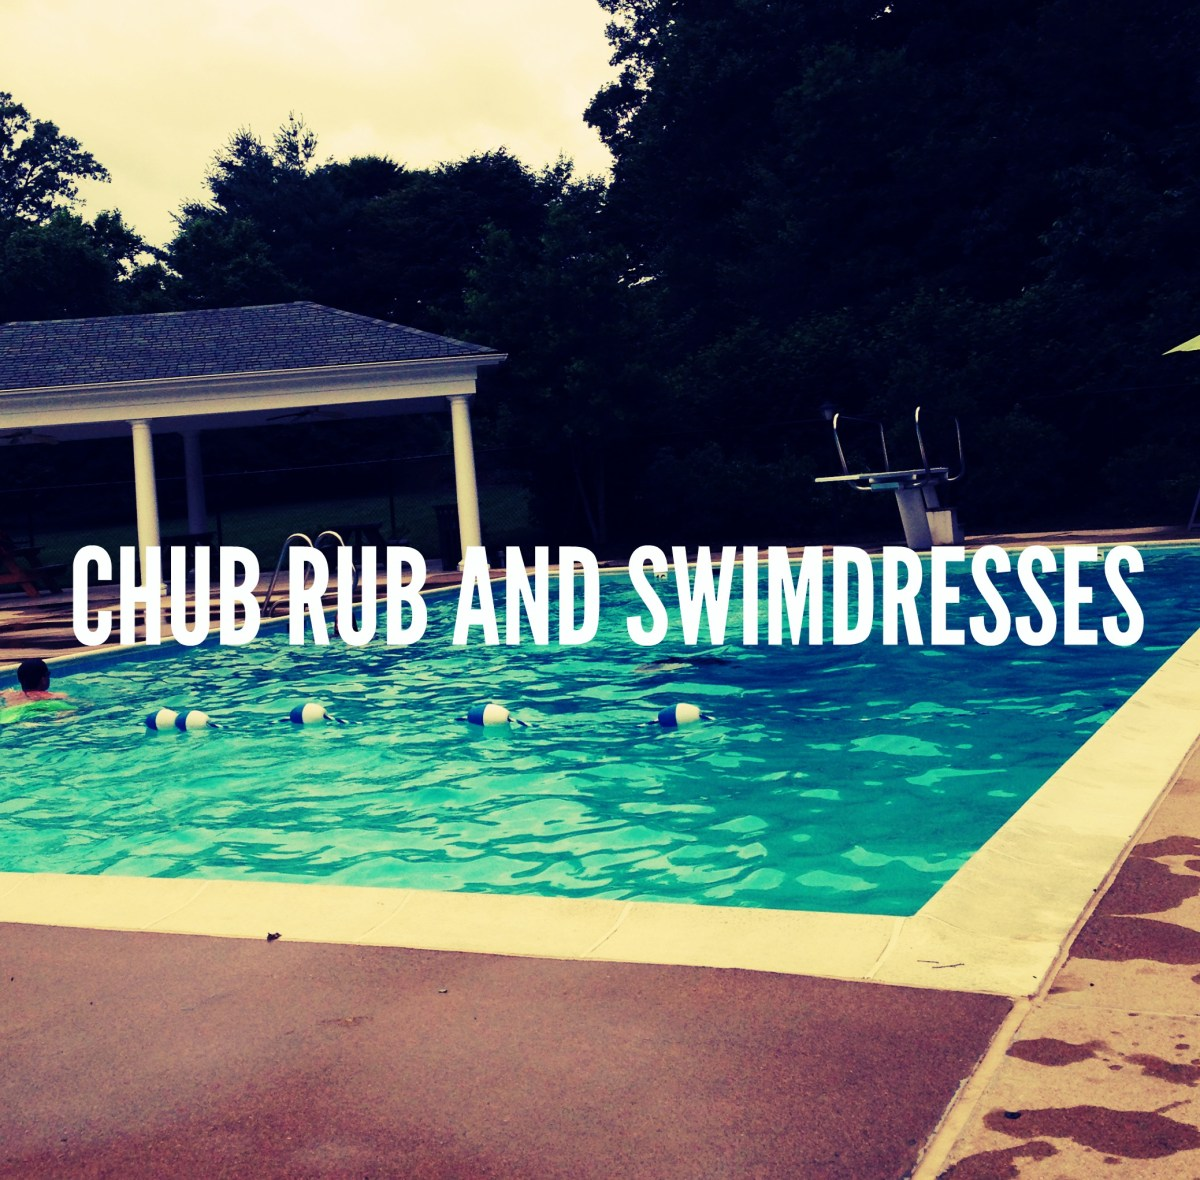 CHUB RUB AND SWIMDRESSES